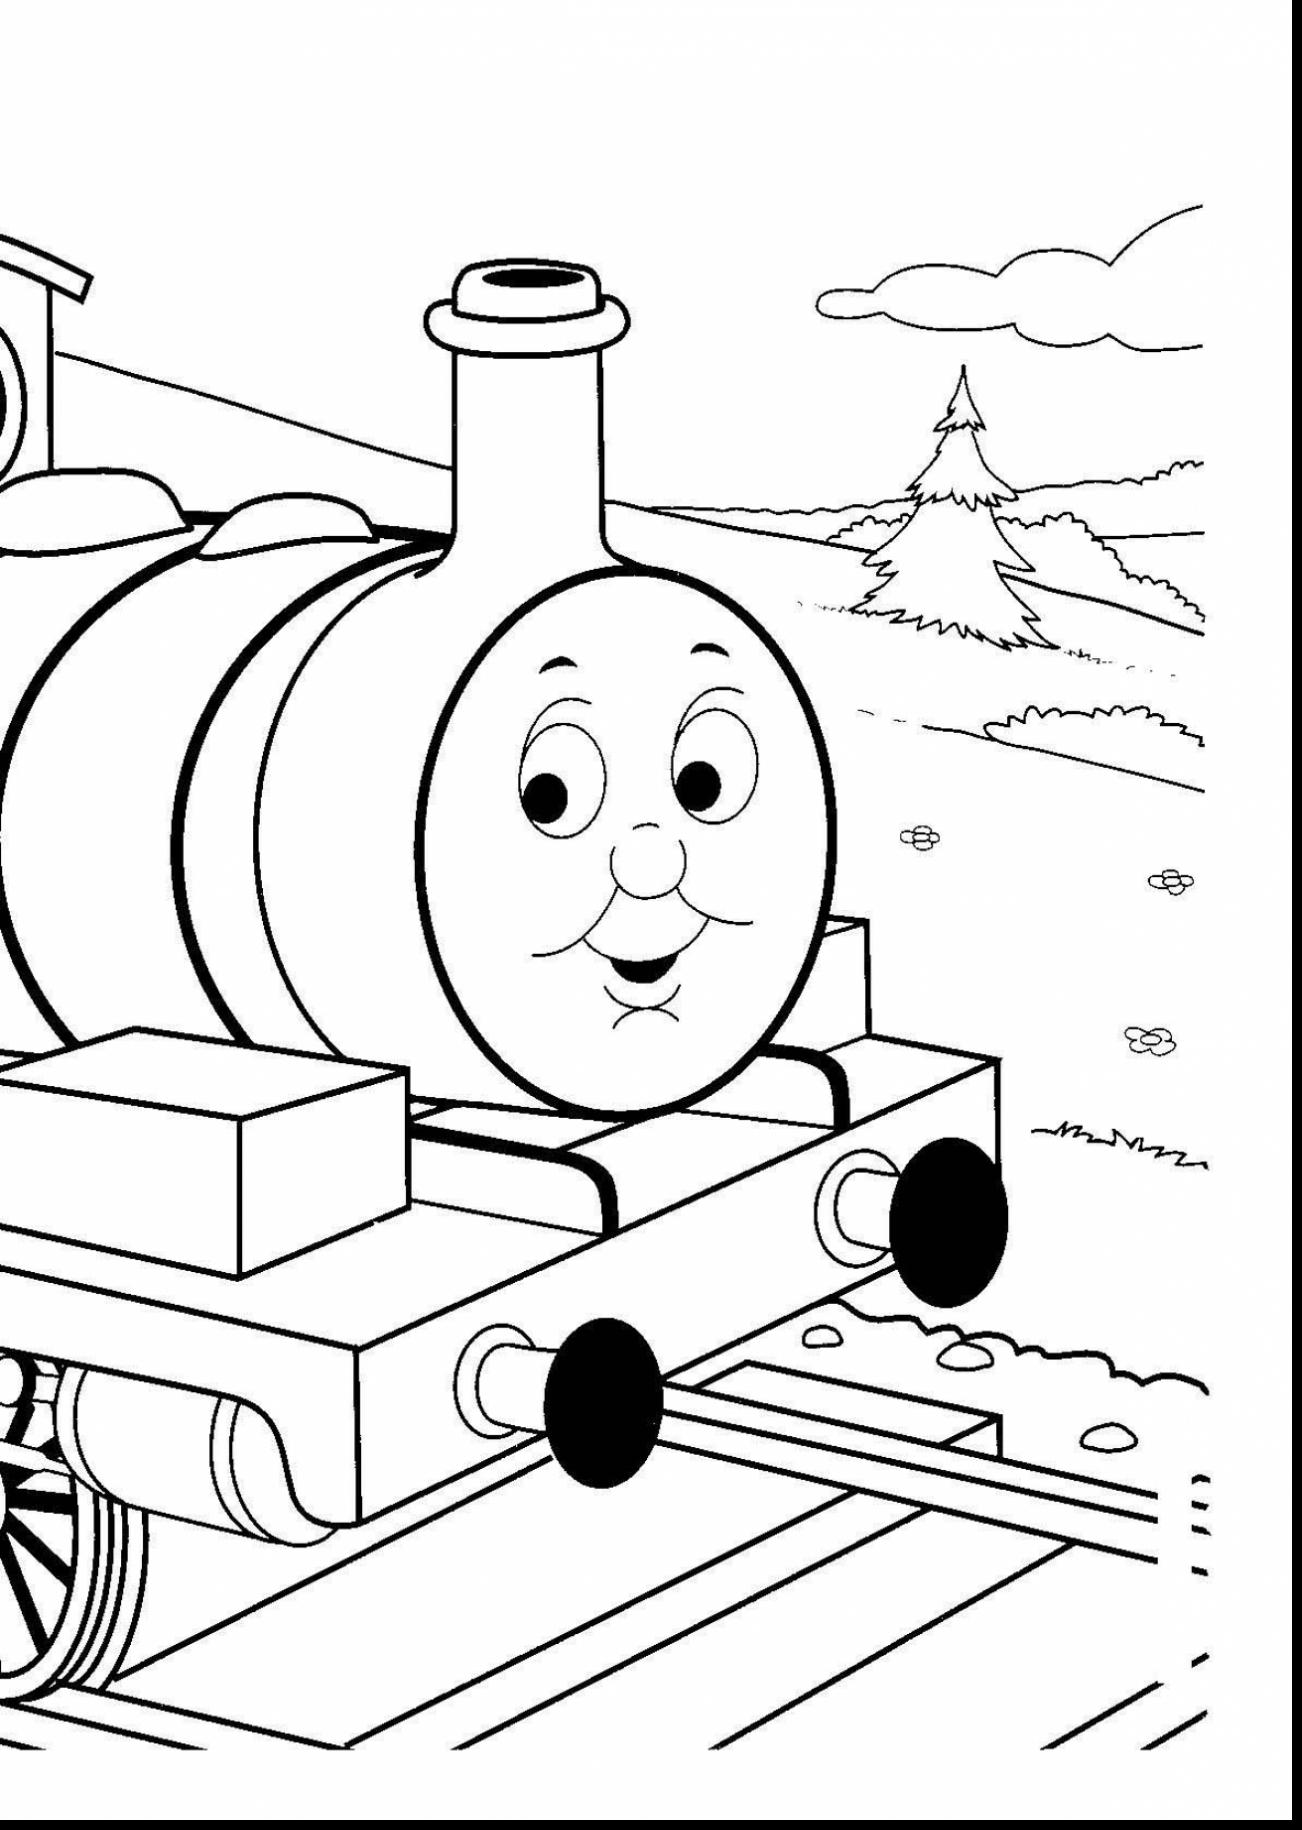 colouring pages thomas the tank engine thomas the tank engine coloring pages 2 coloring kids thomas the pages colouring engine tank